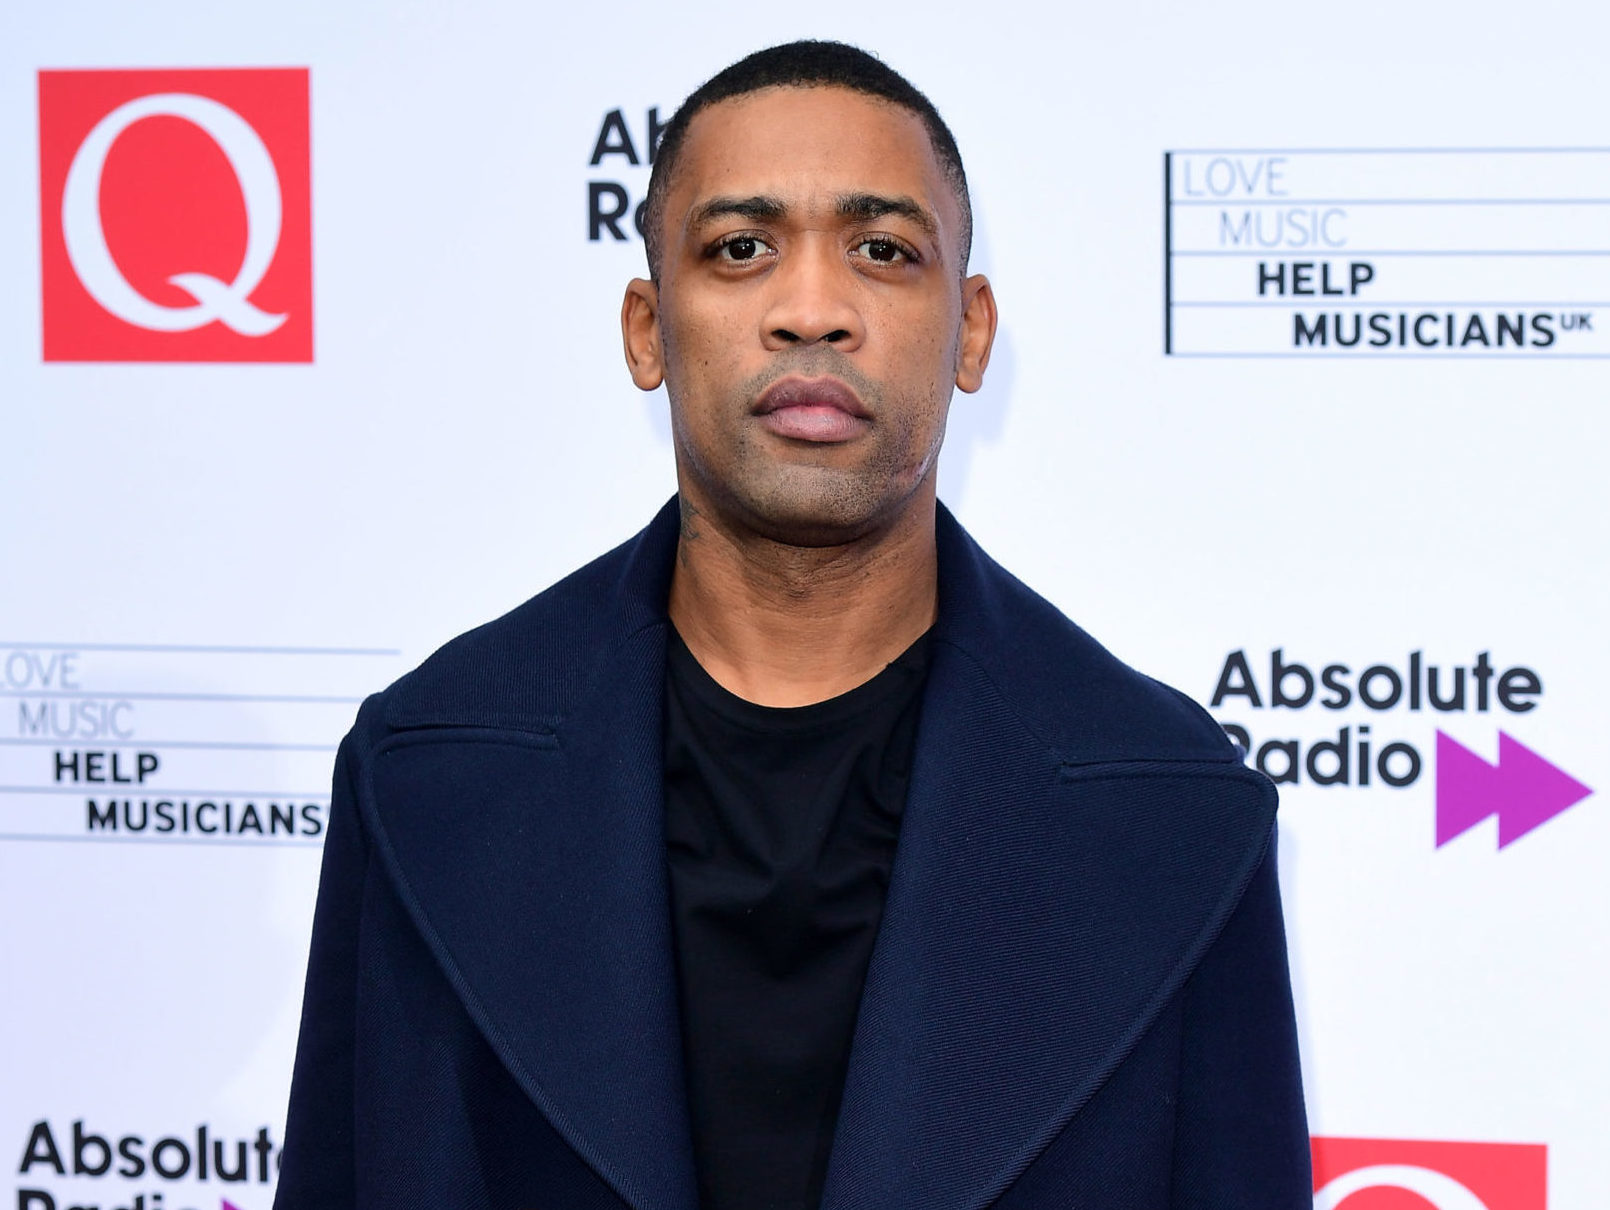 Grime artist Wiley